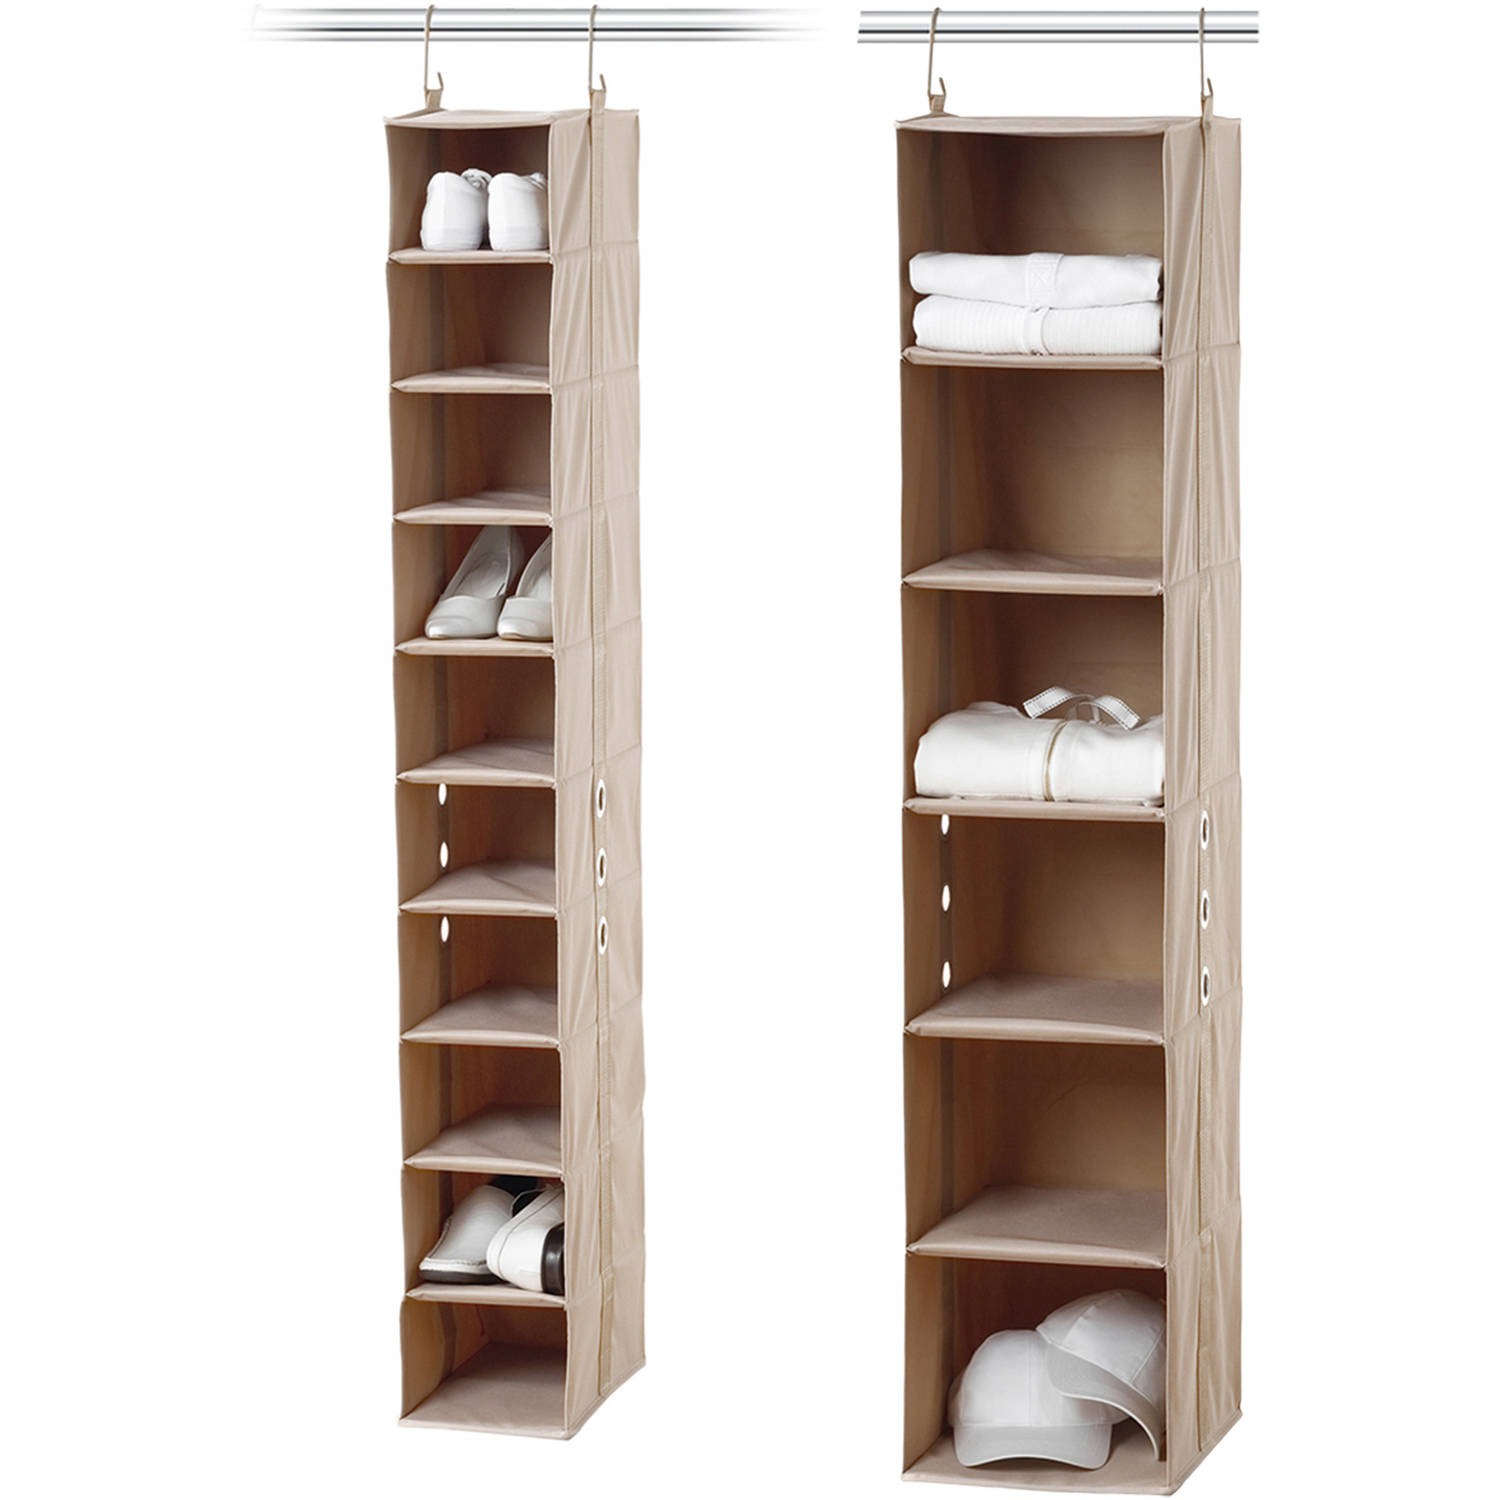 Neatfreak 10 Shelf Shoe Organizer And 6 Shelf Closet Organizer